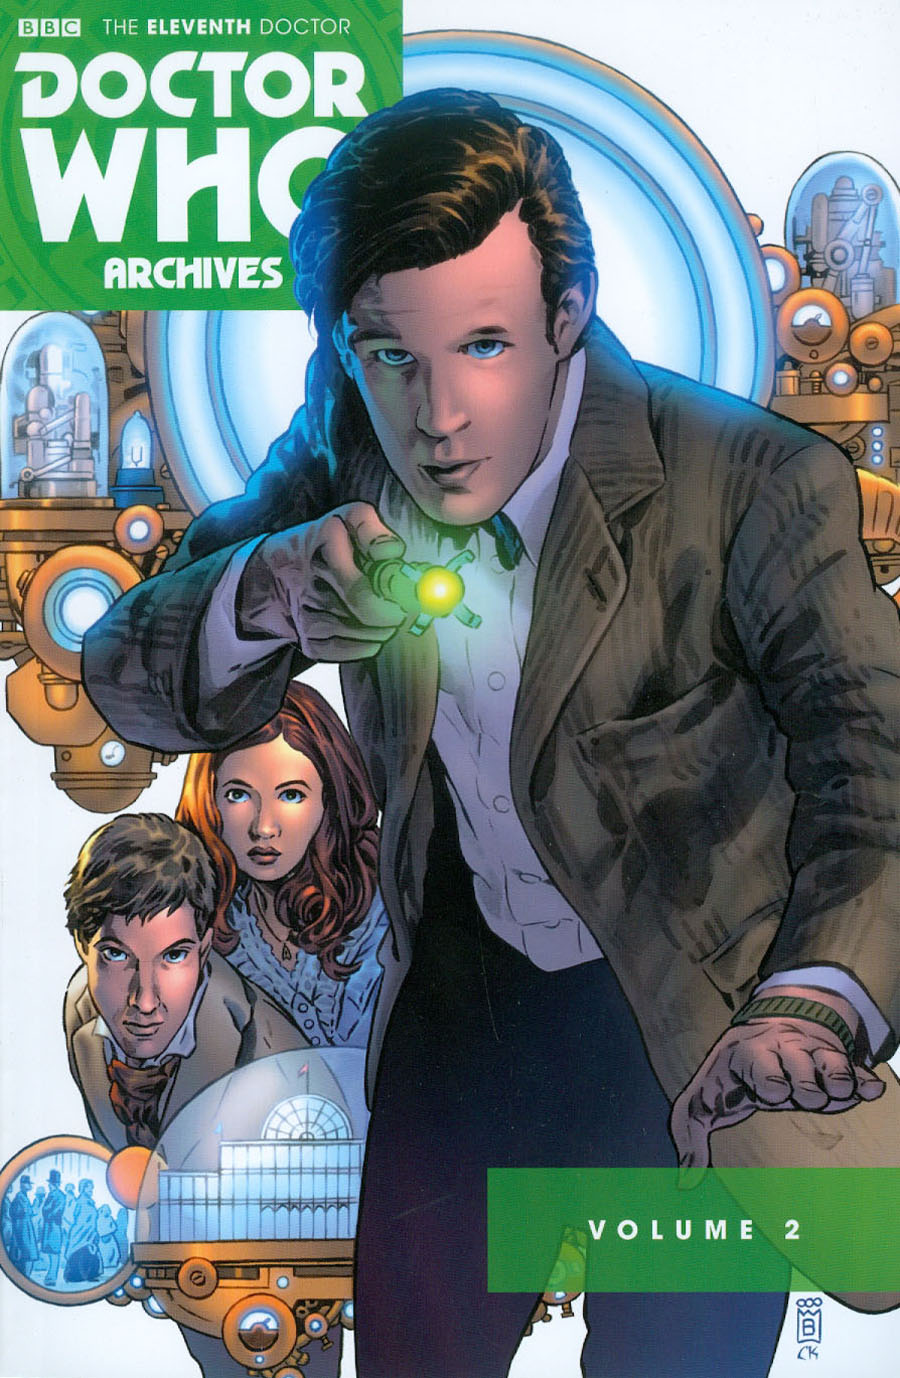 Doctor Who Eleventh Doctor Archives Vol 2 TP